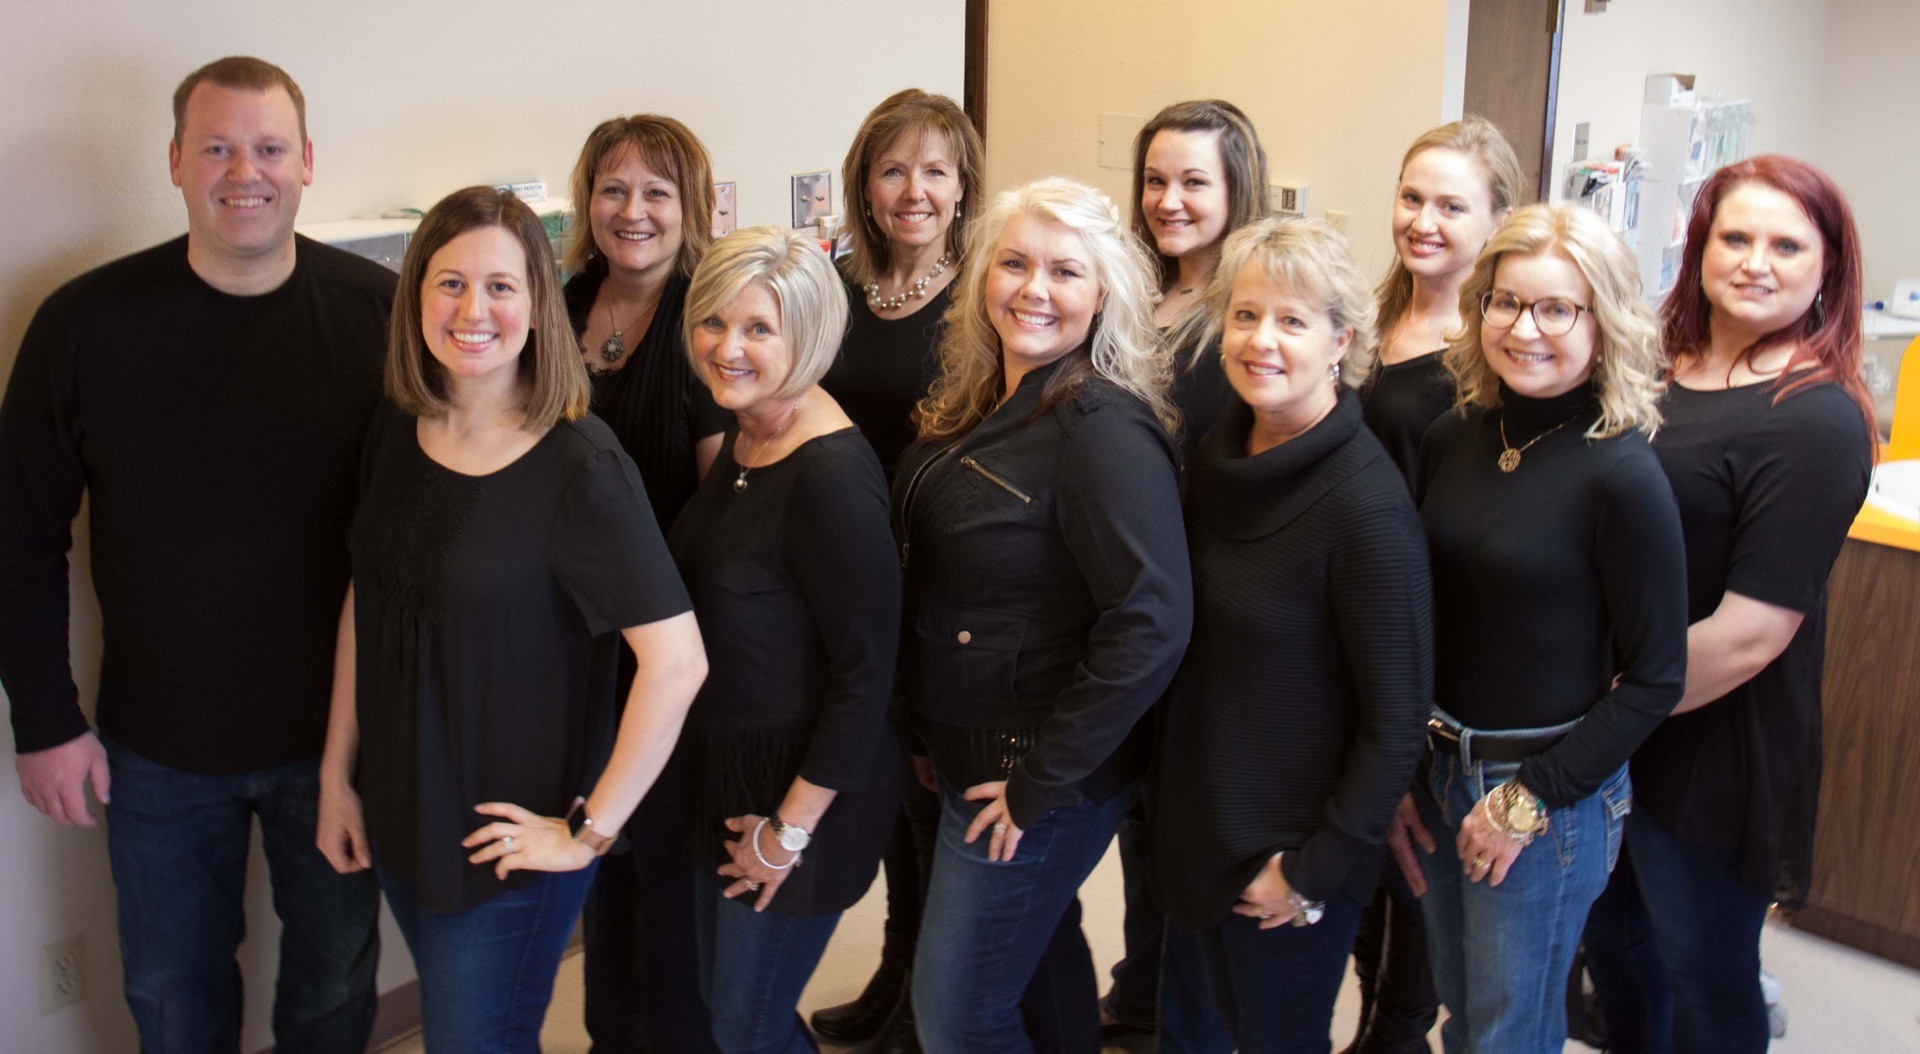 10 women and one man smiling, all in black shirts. Entire staff of Todd S. Johnson dental office.